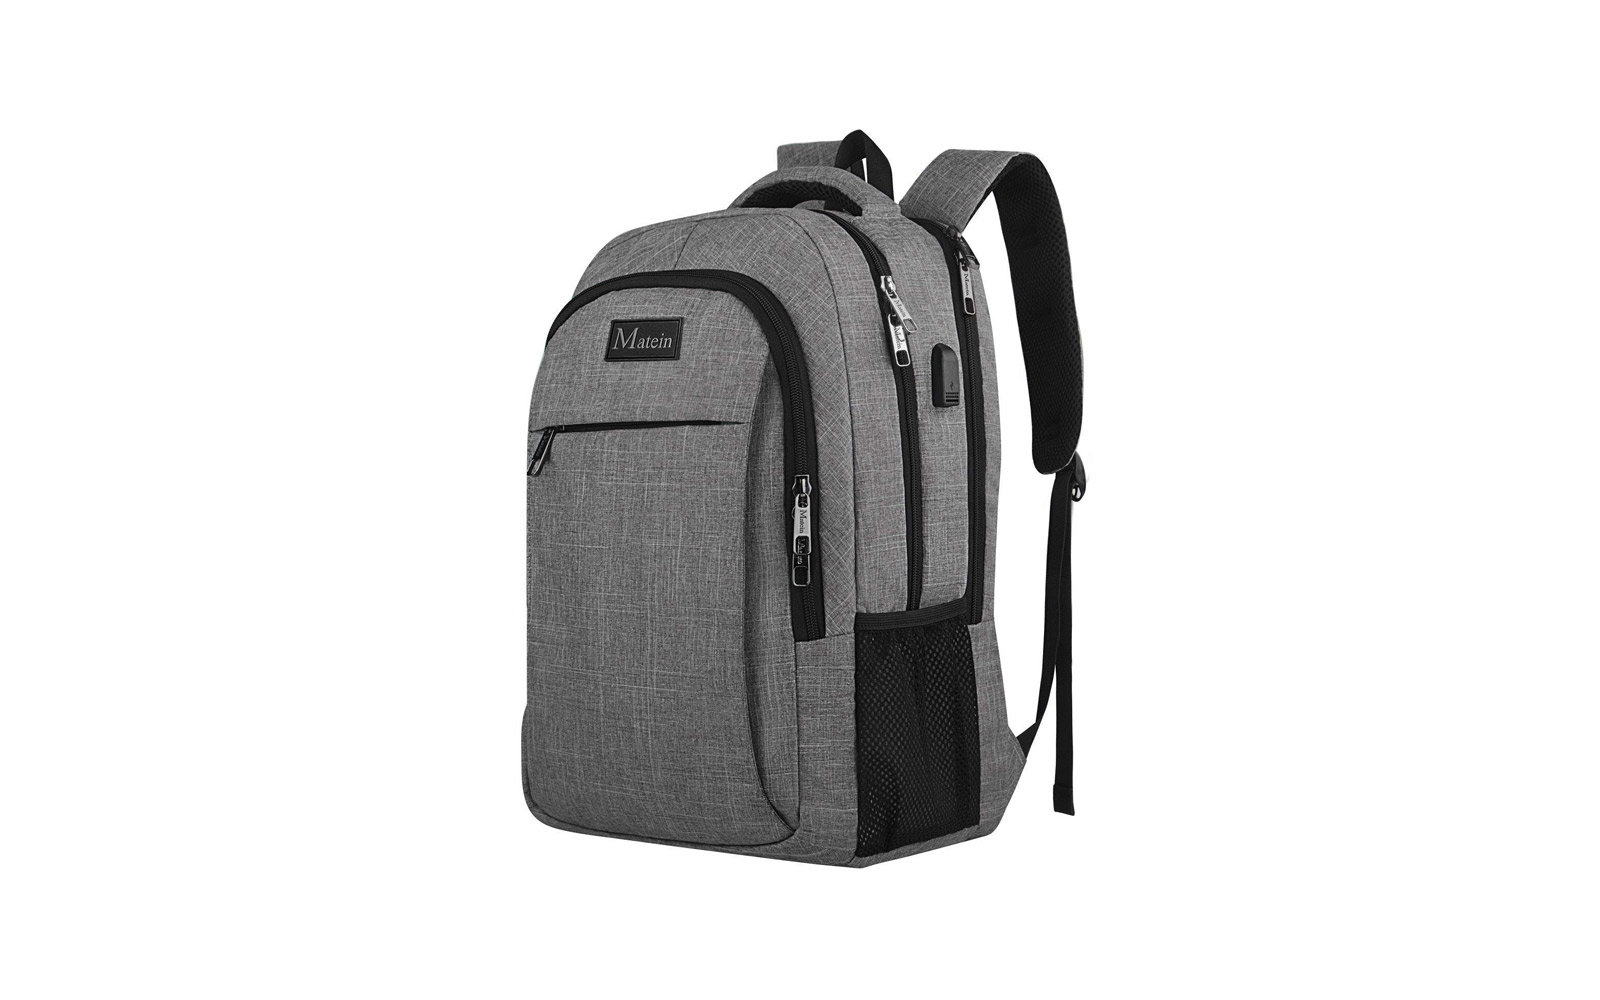 c415efdba30 The Amazon Best-seller  Matein Travel. matein laptop backpack